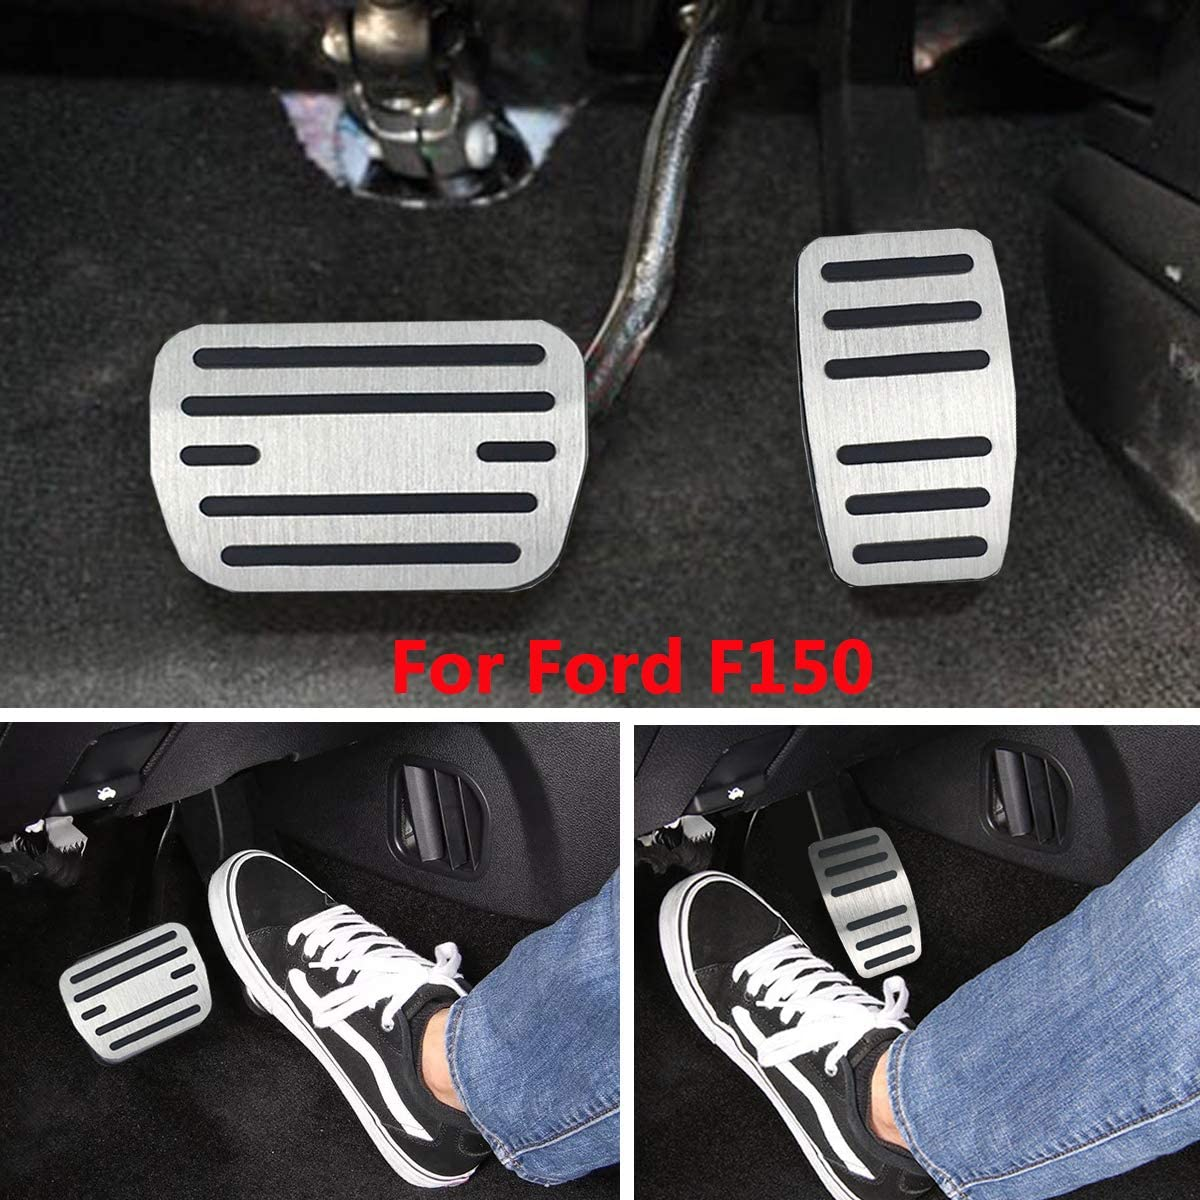 TTCR-II/Pedal Covers for Ford F150 Automatic Transmission, 3PCs No Drill/Anti-Slip Aluminum-Alloy/Gas Pedal Covers Brake and Parking Pedal Pads for 2015-2018 Ford F150